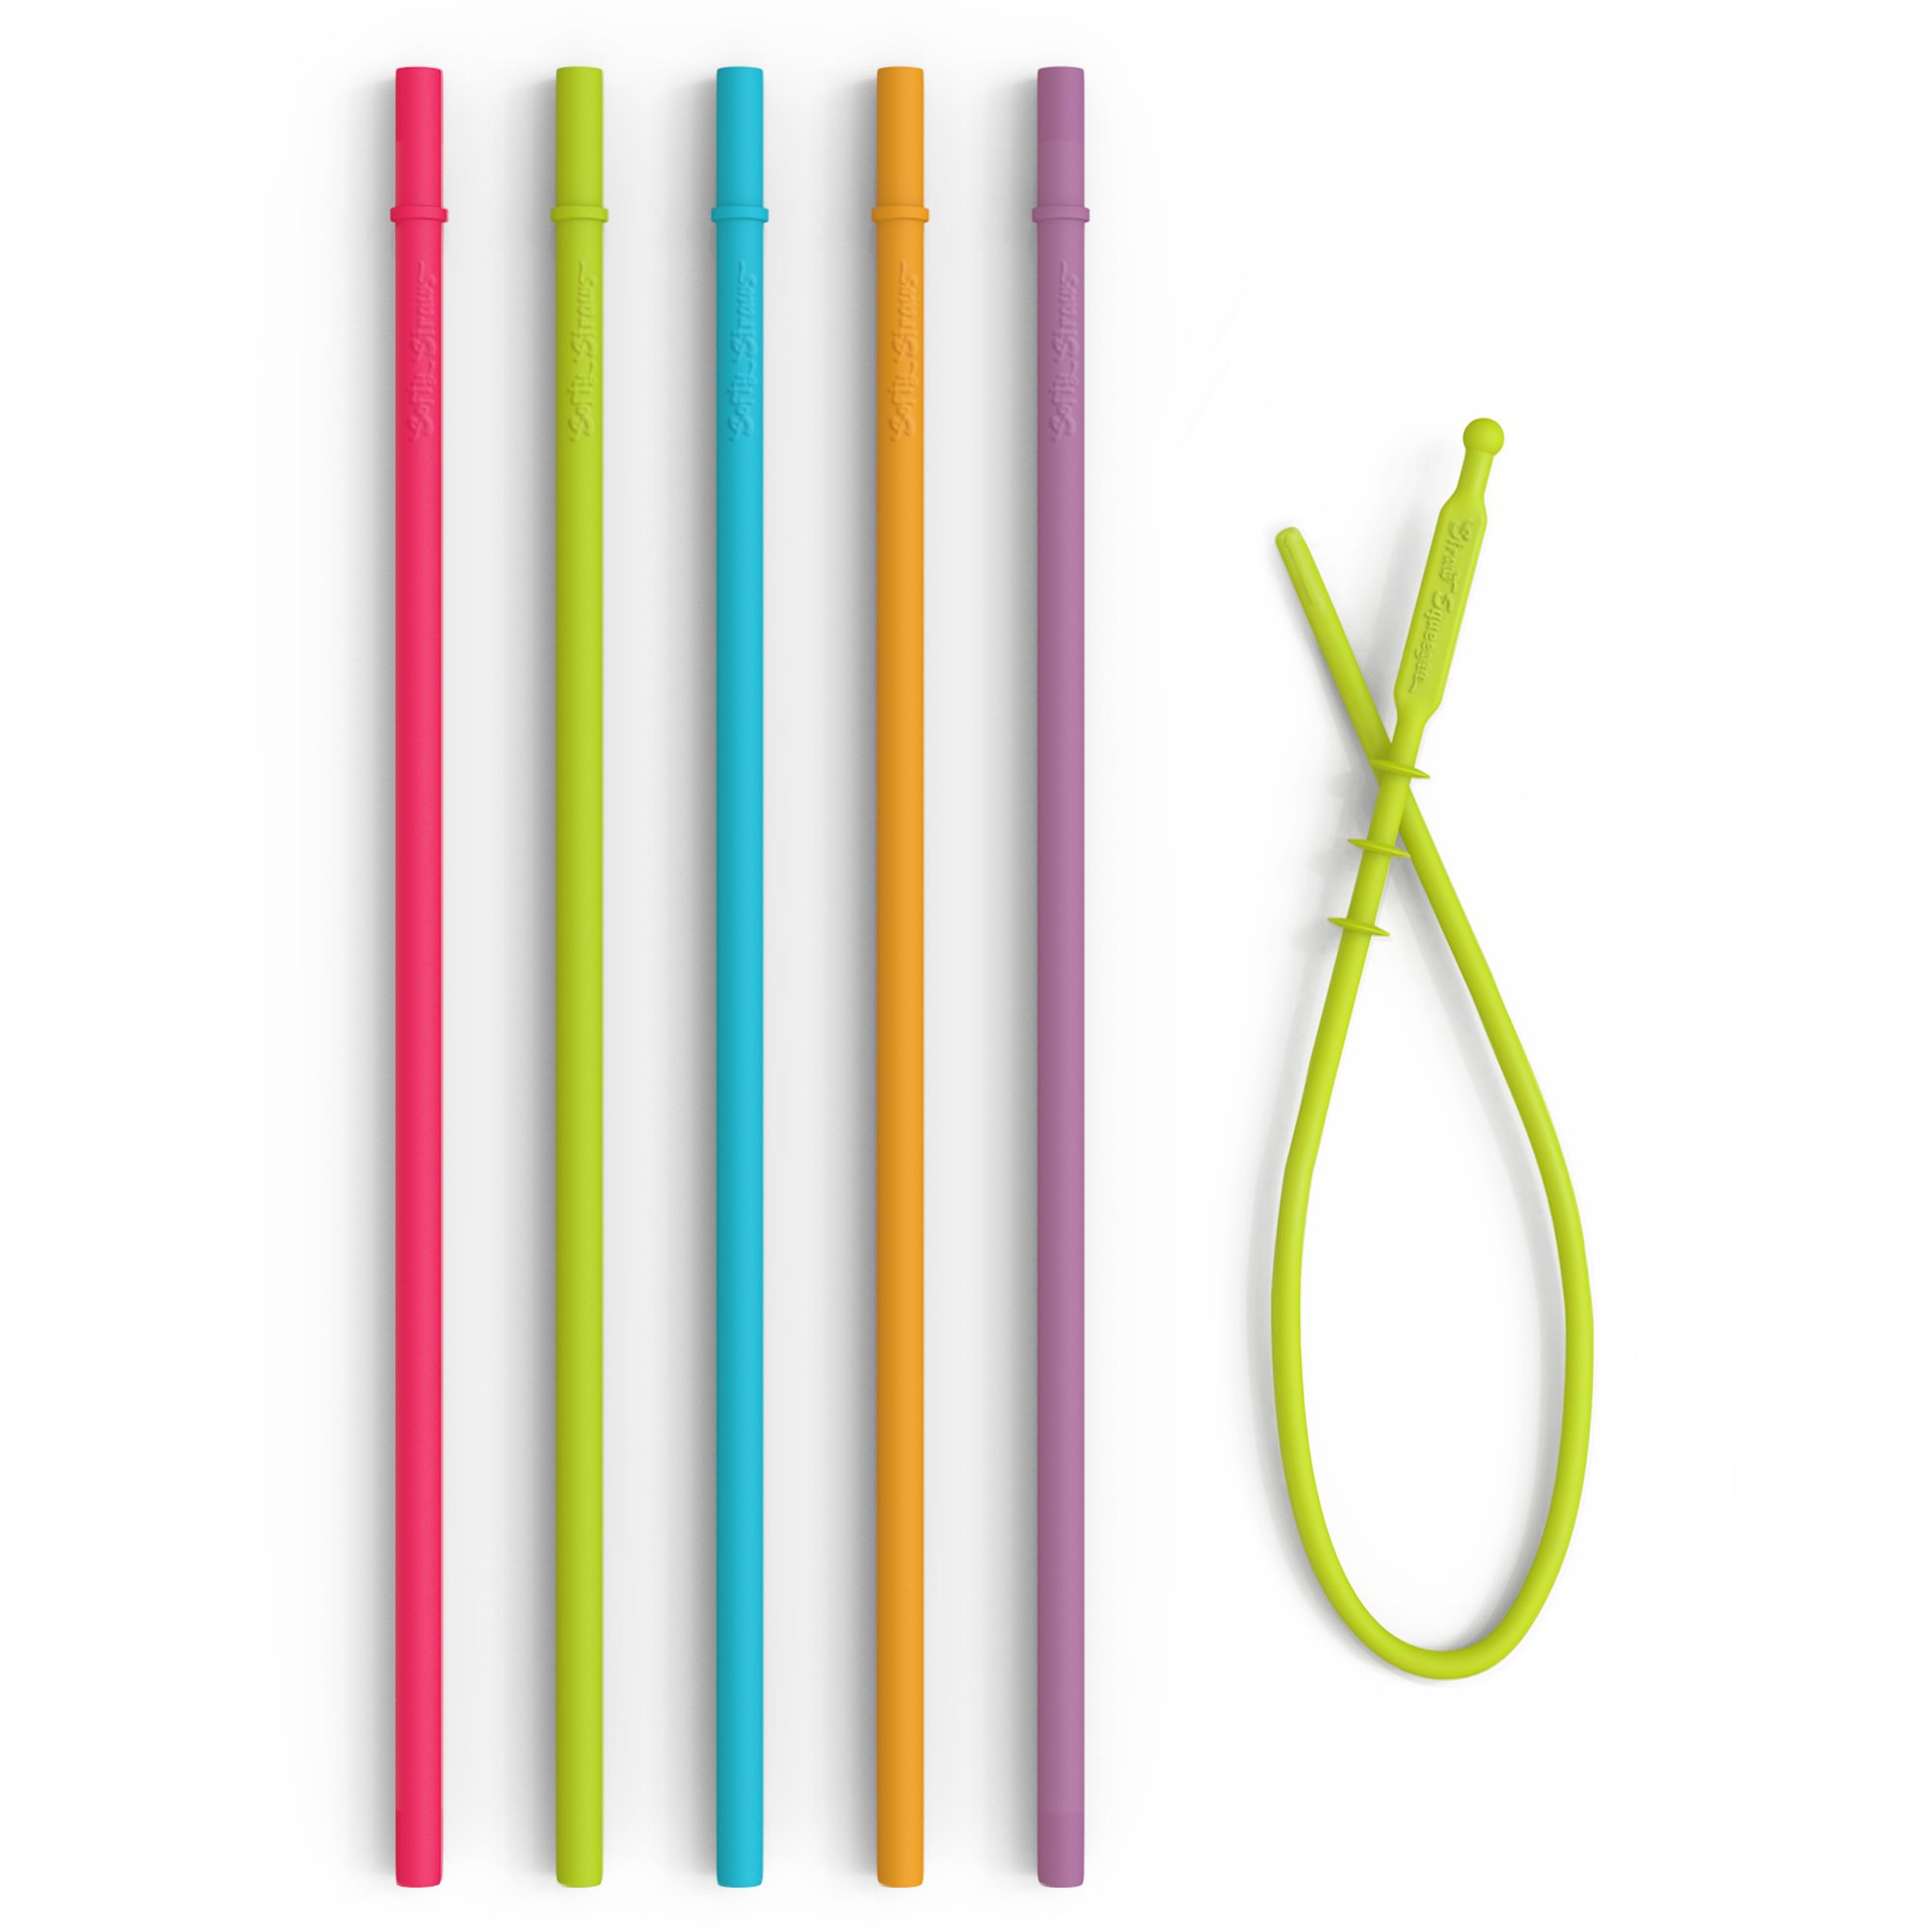 Extra Long Reusable Silicone Straws - Slender Drinking Straws for Simple Modern, Starbucks, Yeti, rTic, Acrylic 24 30 40 oz Tumbler Cups - Non-Rubber Silicon Flexible BPA Free.